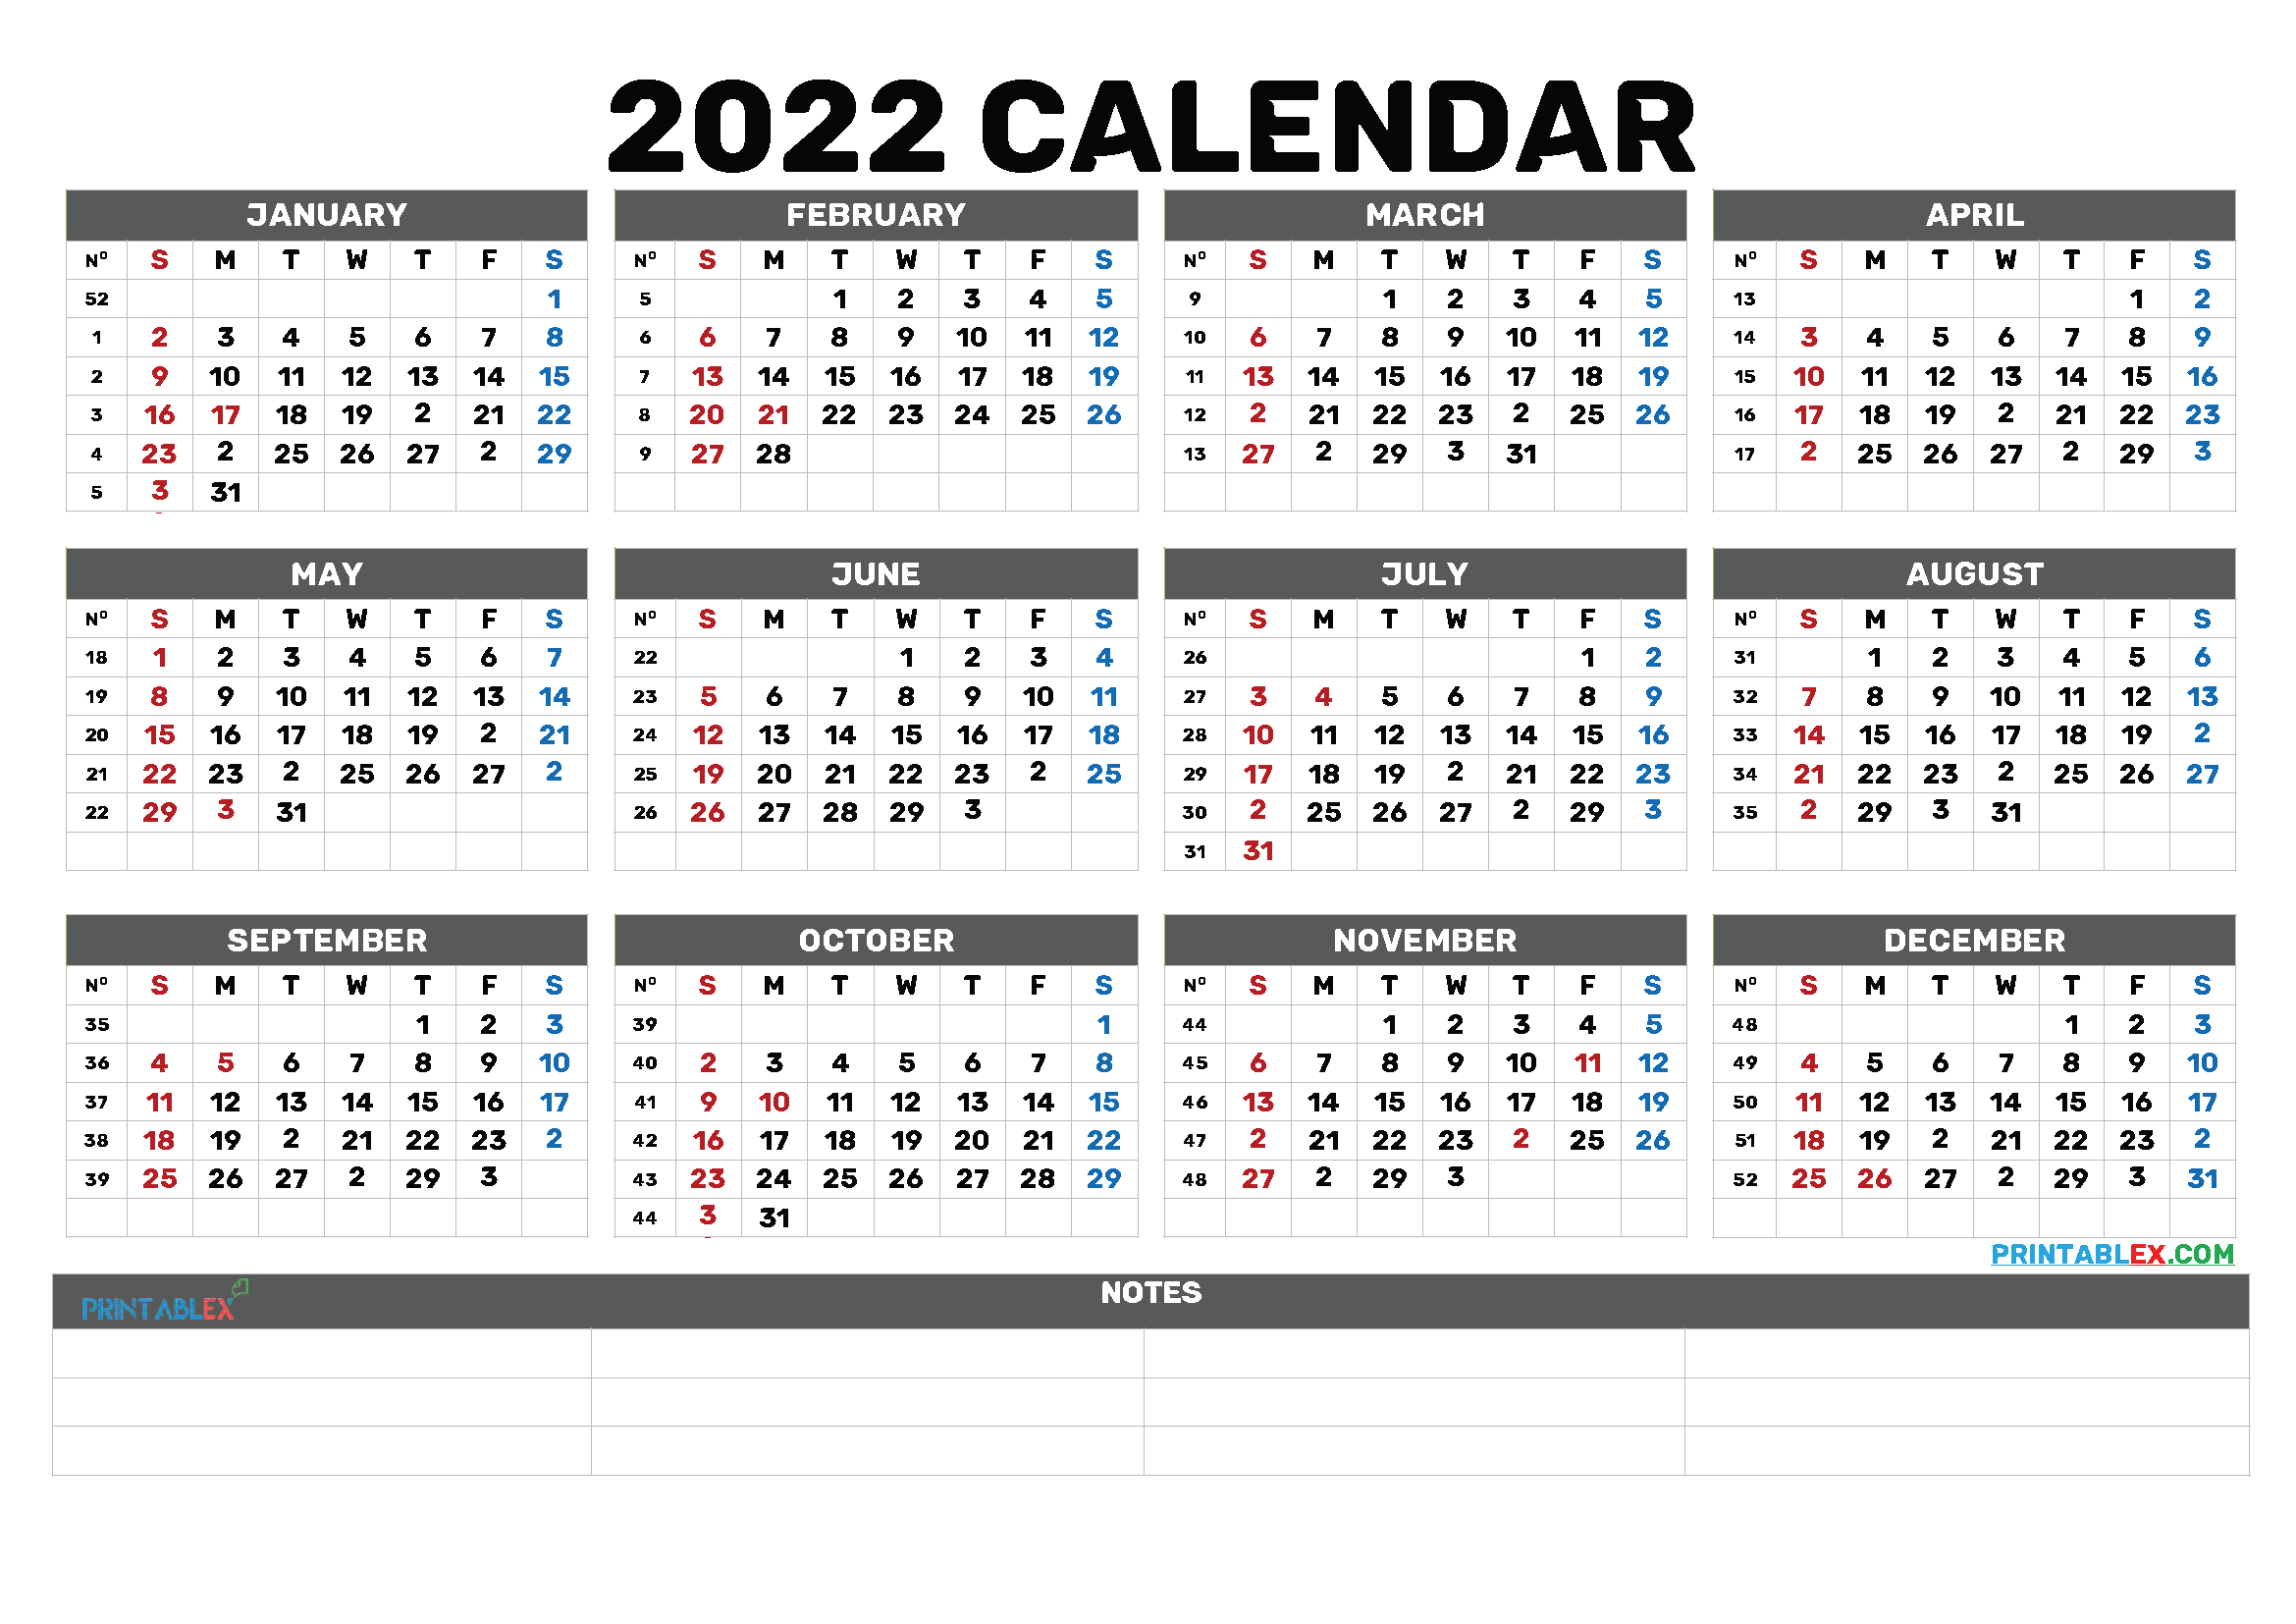 Free Printable 2022 Calendar by Month (Font: magenta)